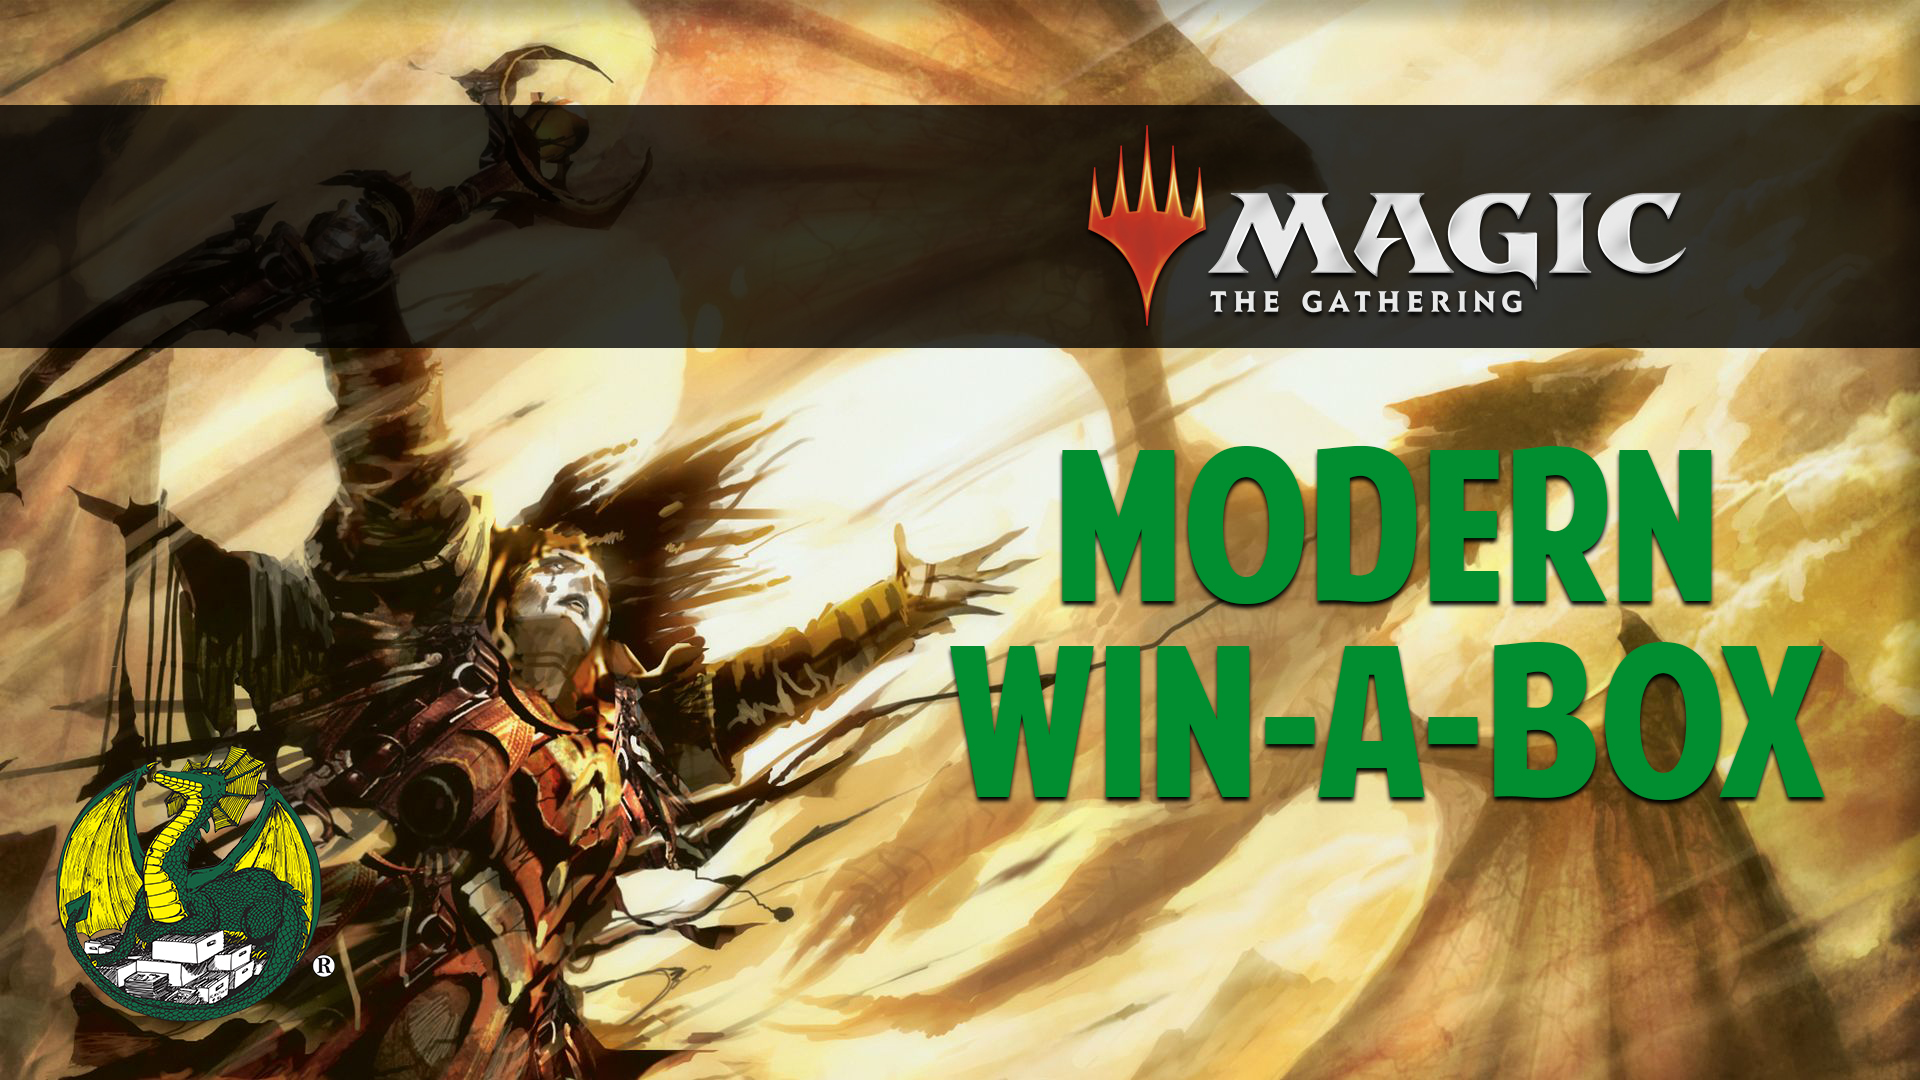 Mtg fnm prizes to win